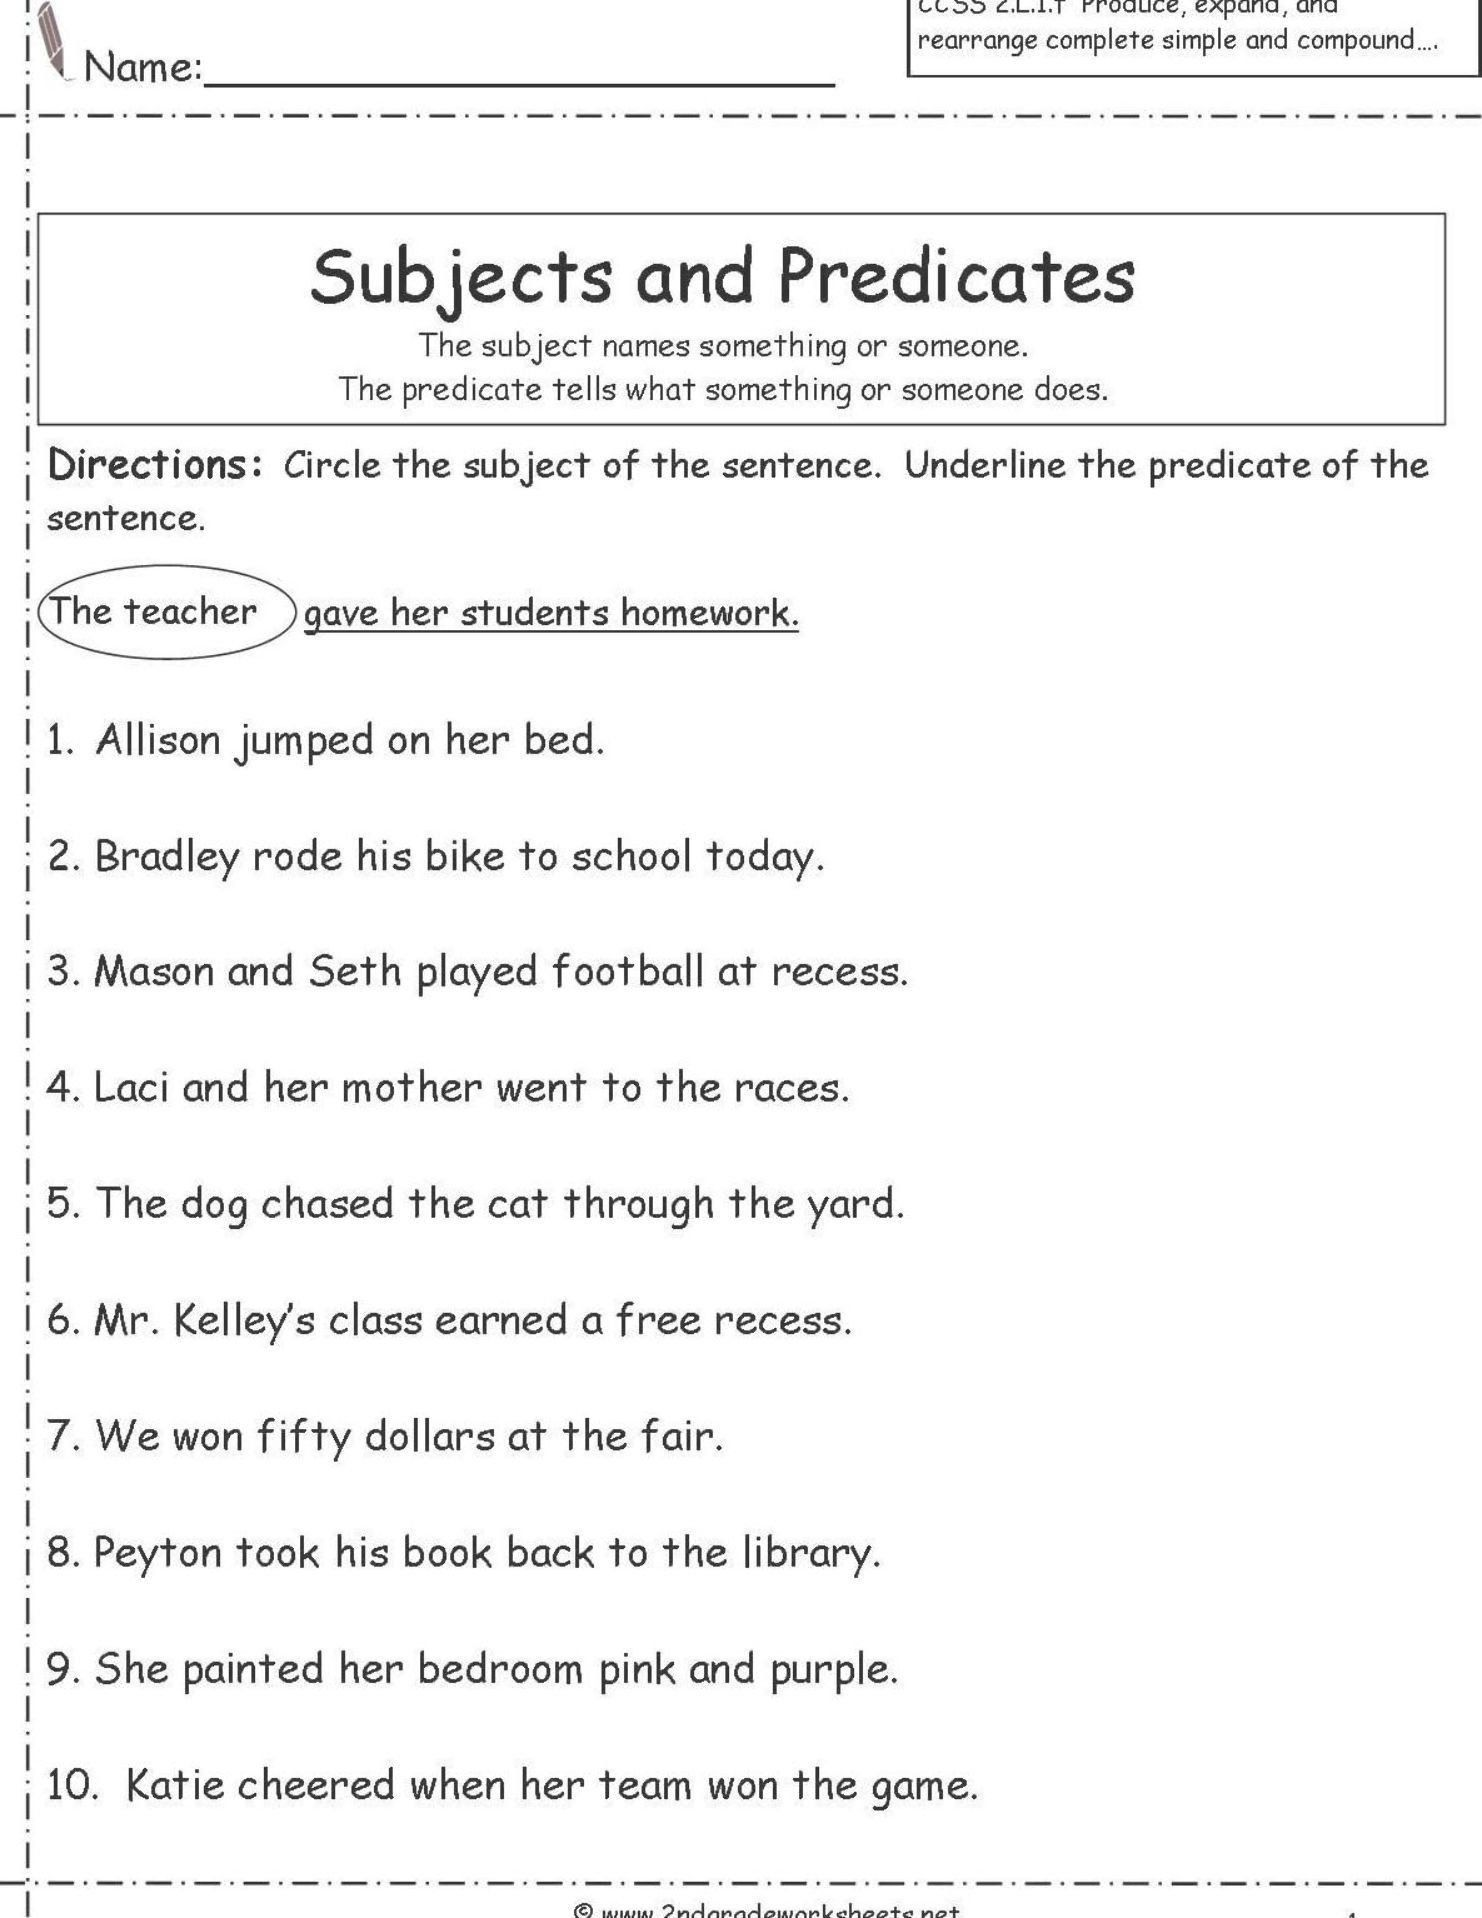 Dictionary Skills Worksheet 3rd Grade Subject and Predicate Worksheets for  Second Grade   Subject and predicate worksheets [ 1918 x 1482 Pixel ]